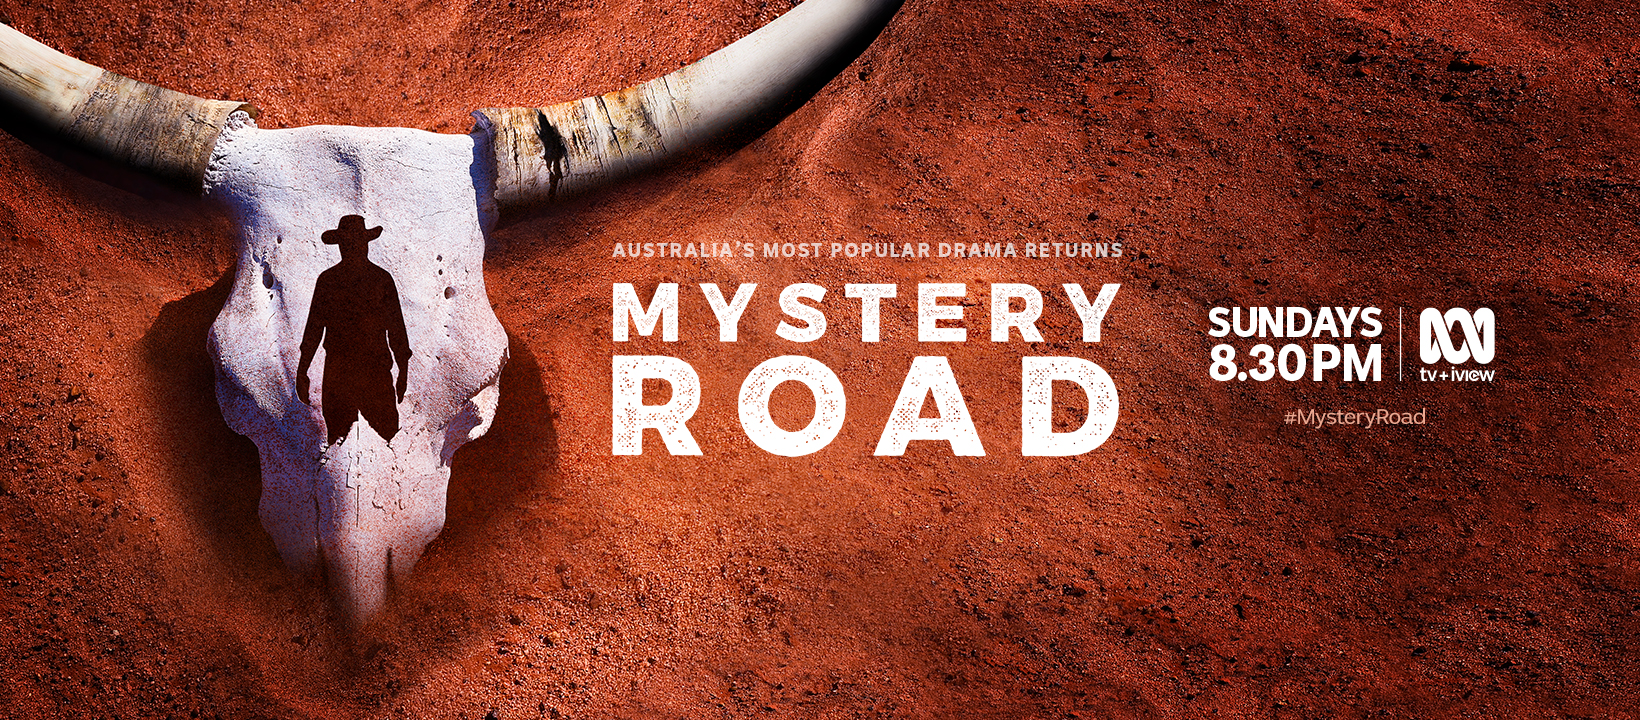 Mystery Road Season 2 premieres on ABC TV Sunday April 19